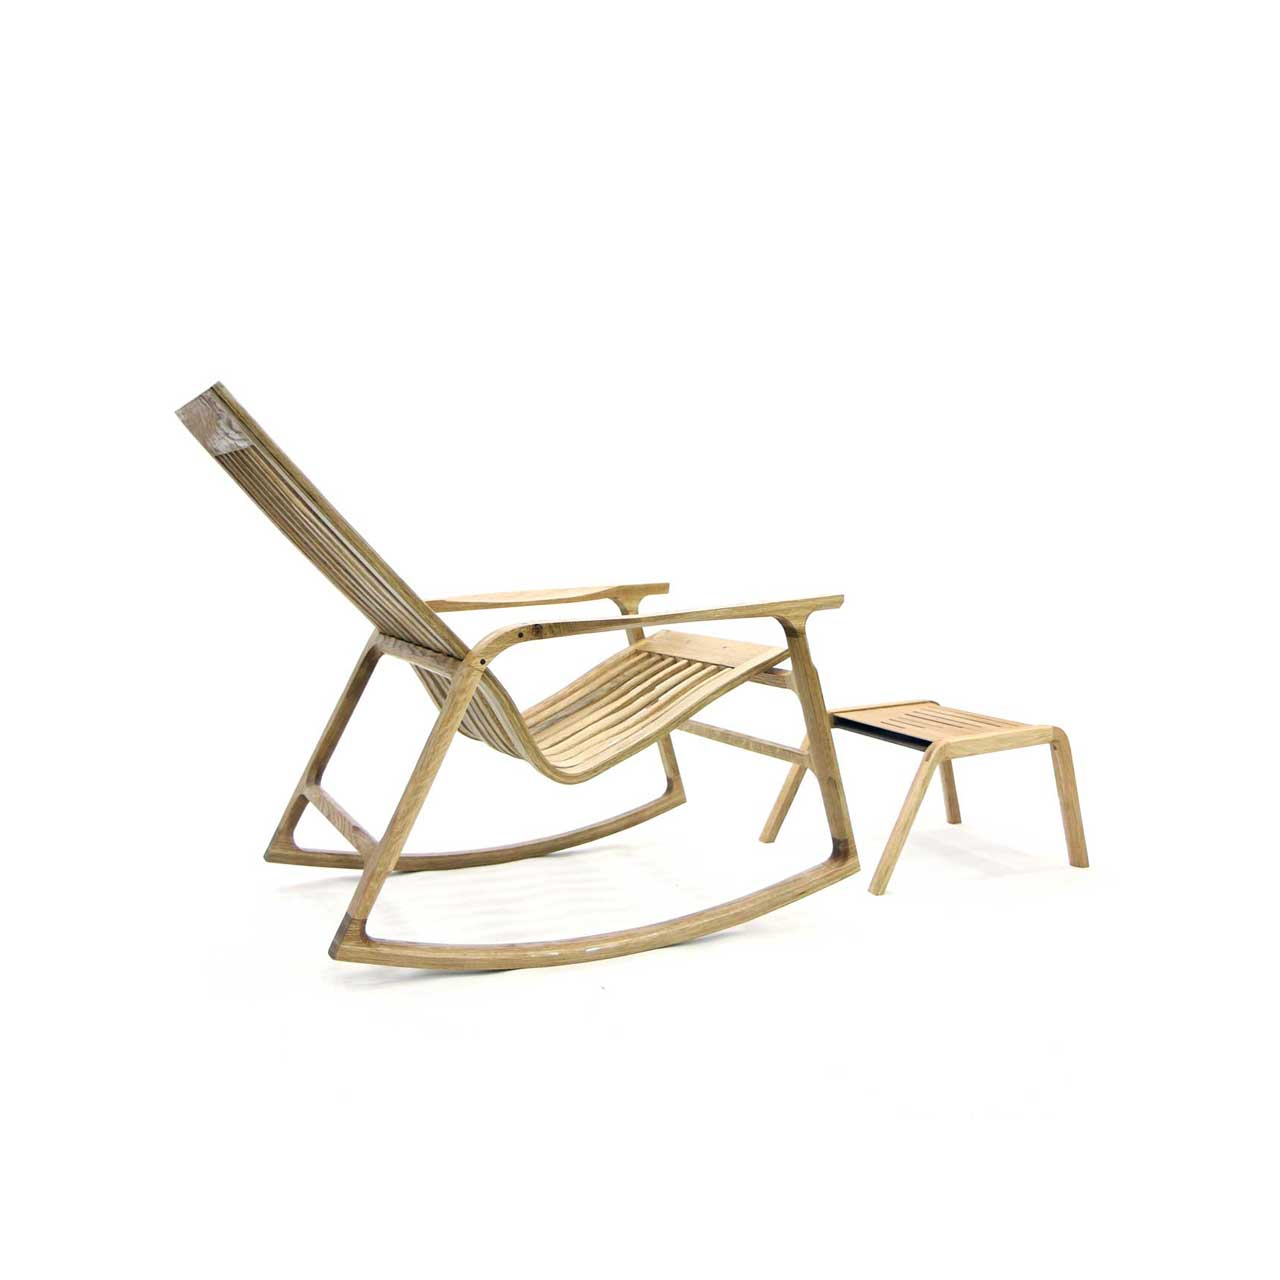 KINETIC/Rocking chair